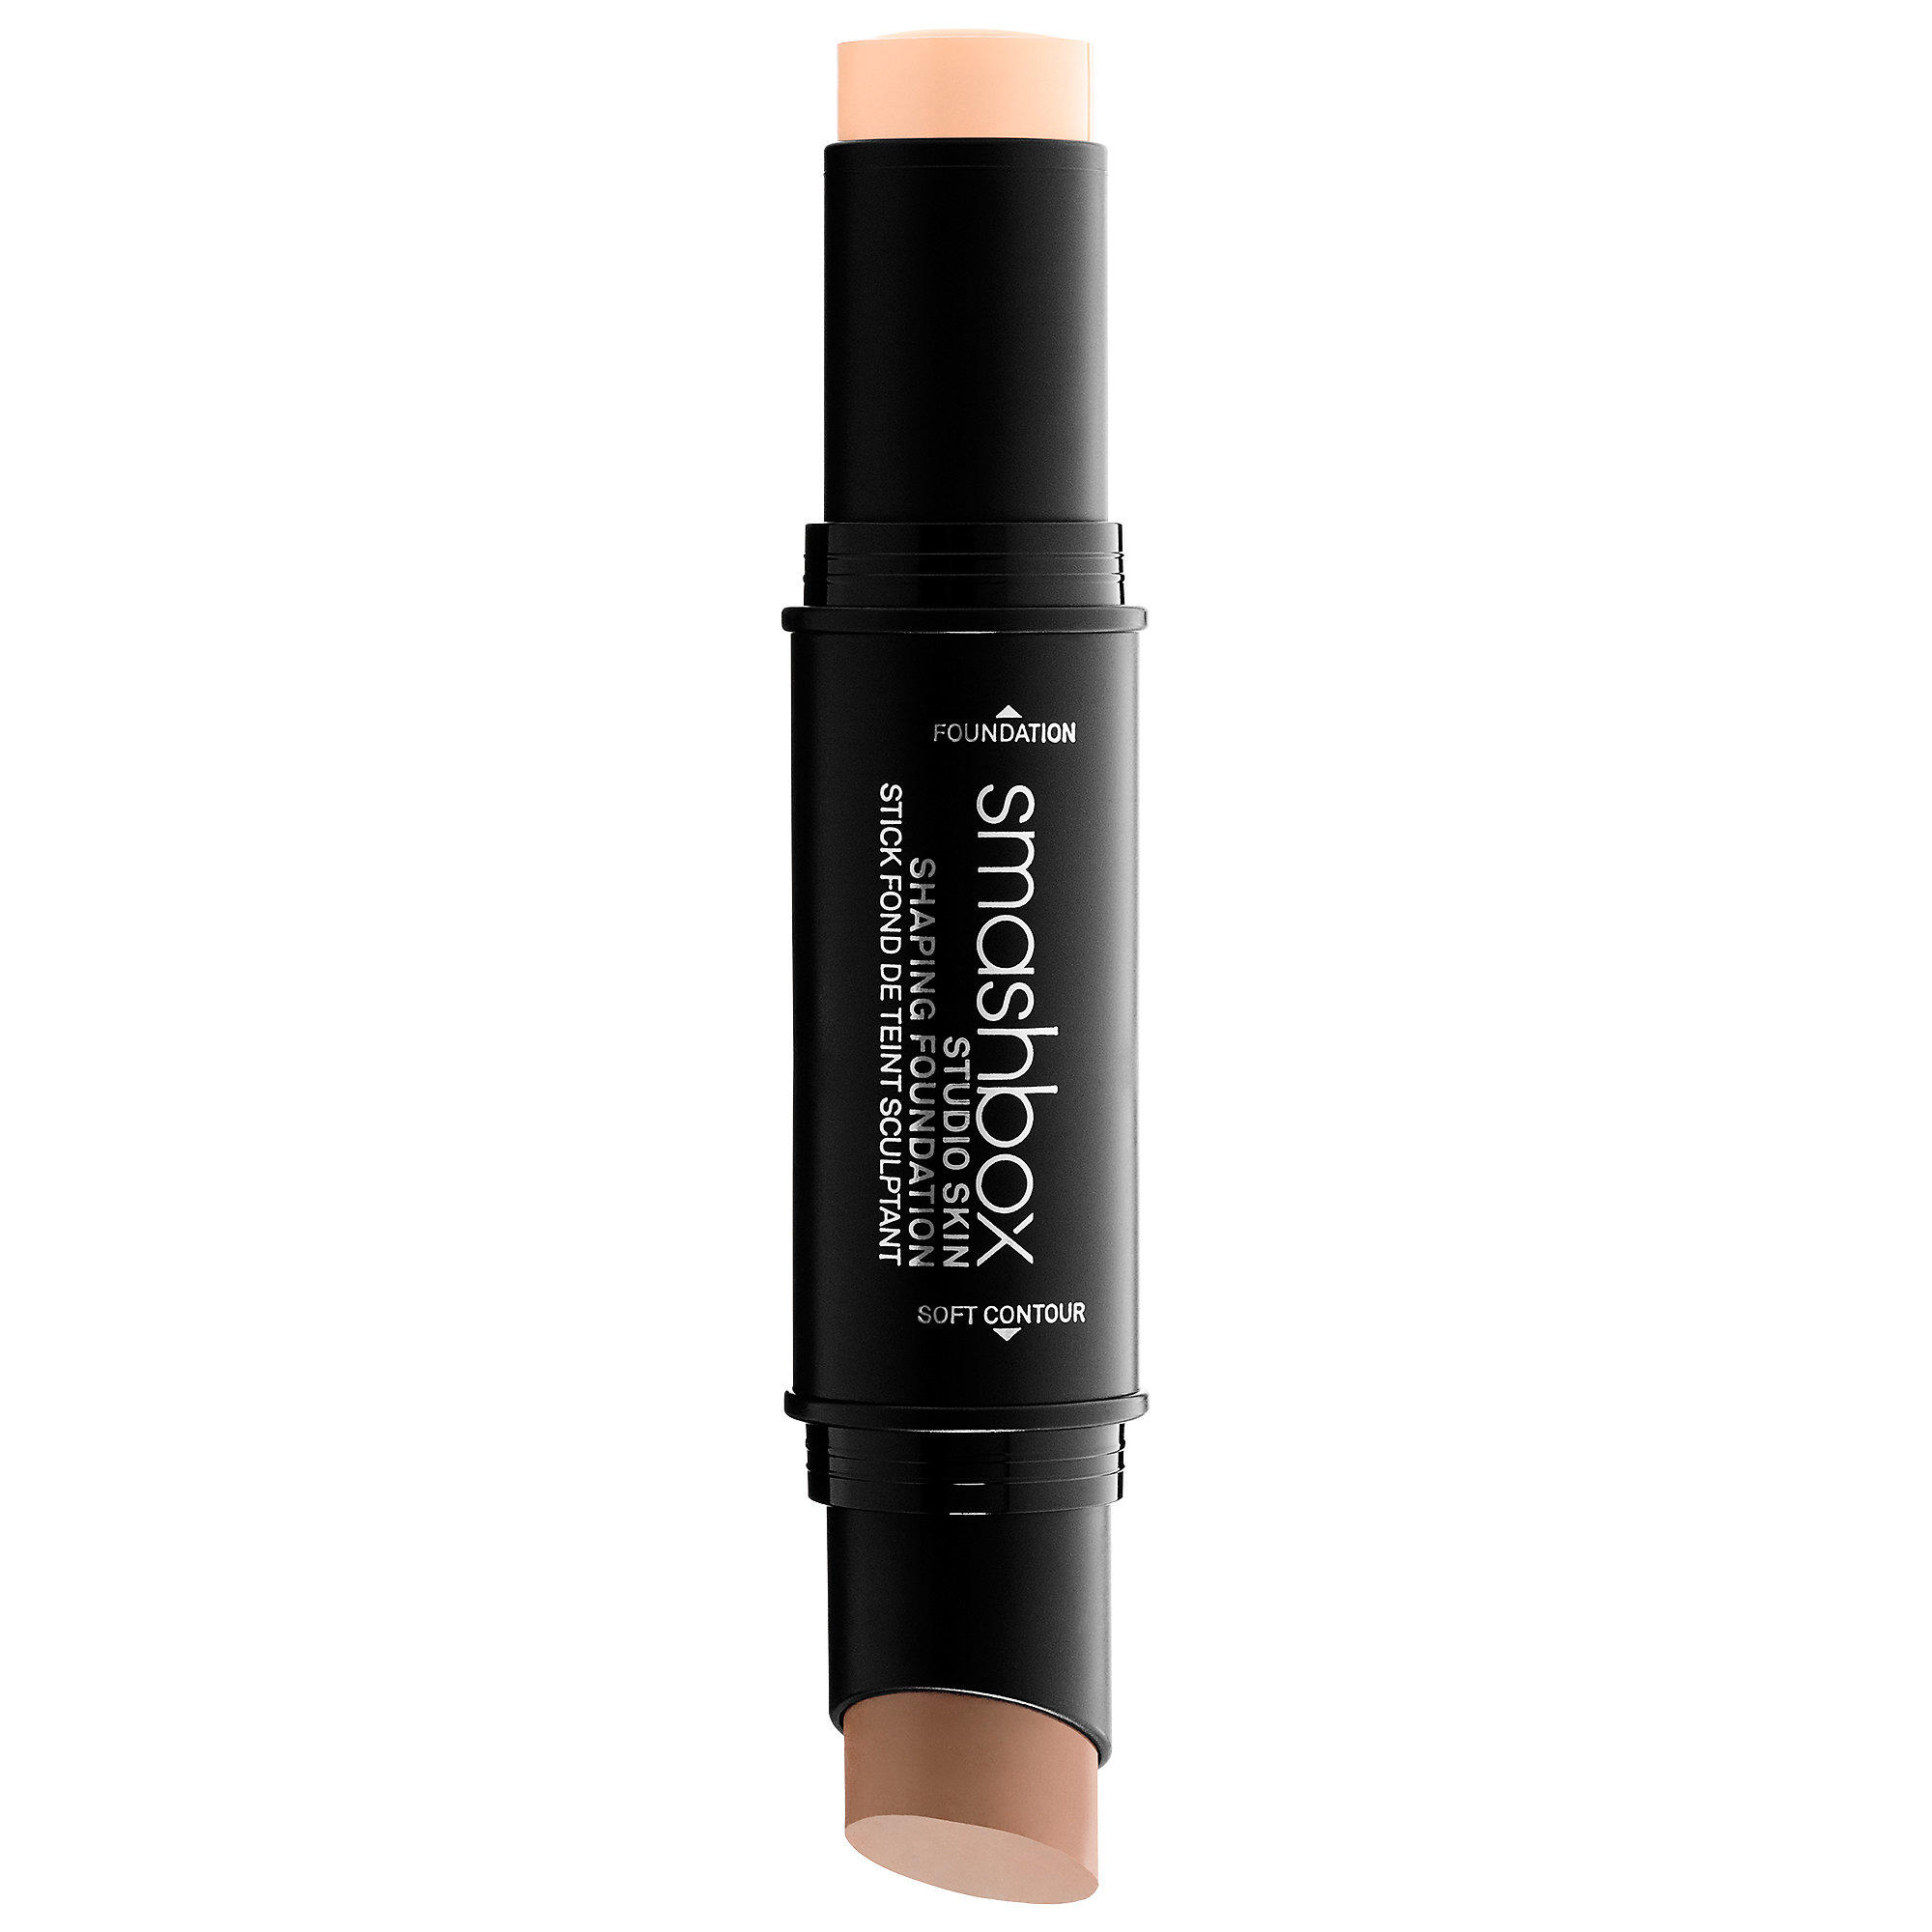 Smashbox Studio Skin Face Shaping Foundation Stick 0.5